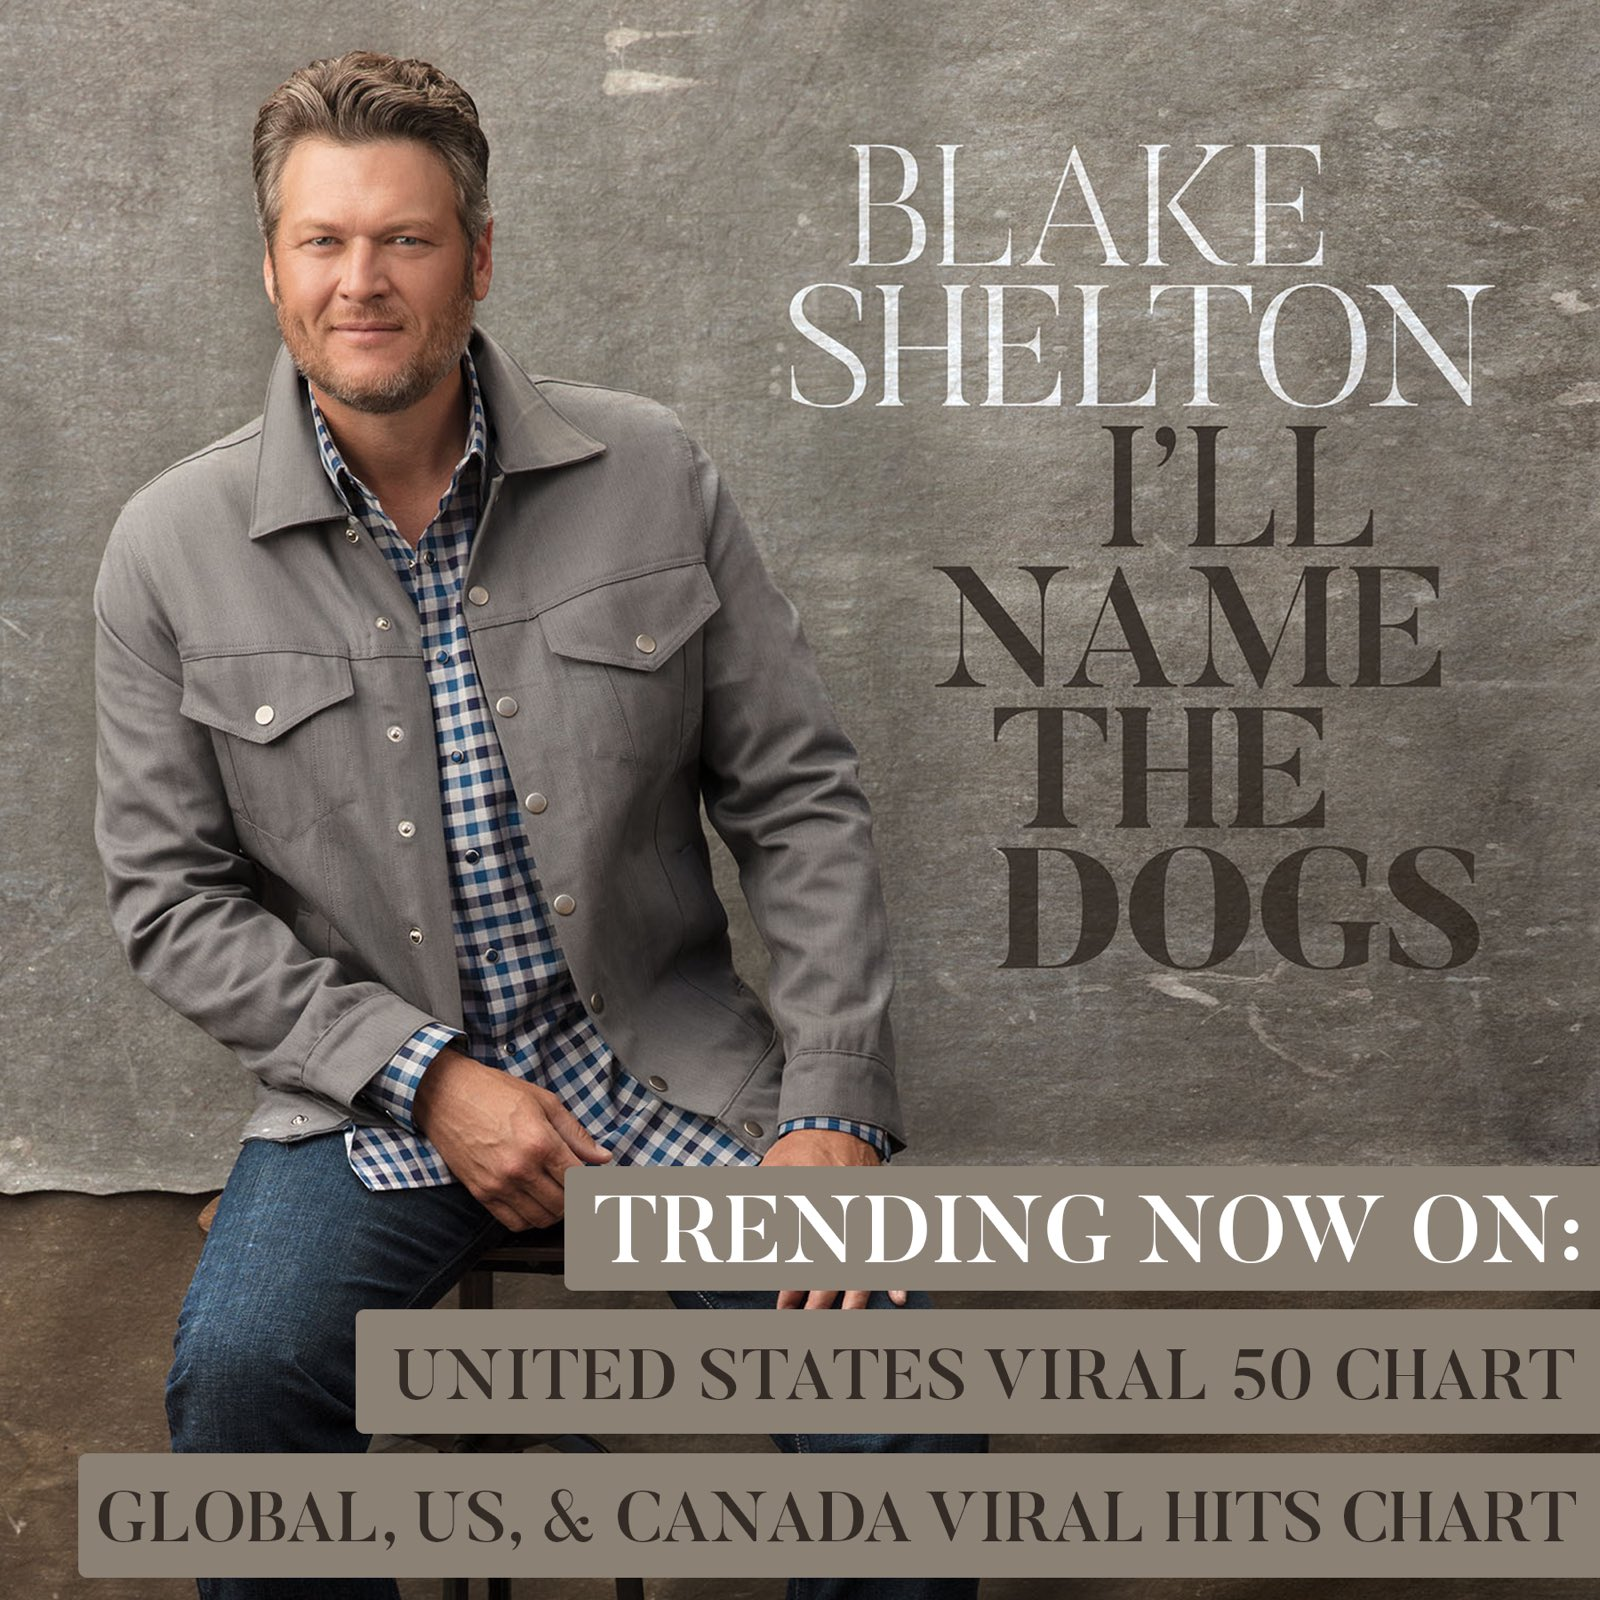 Damn!! Glad y'all like this tune as much as I do.. love y'all #IllNameTheDogs @Spotify https://t.co/1EFoRhs9mS